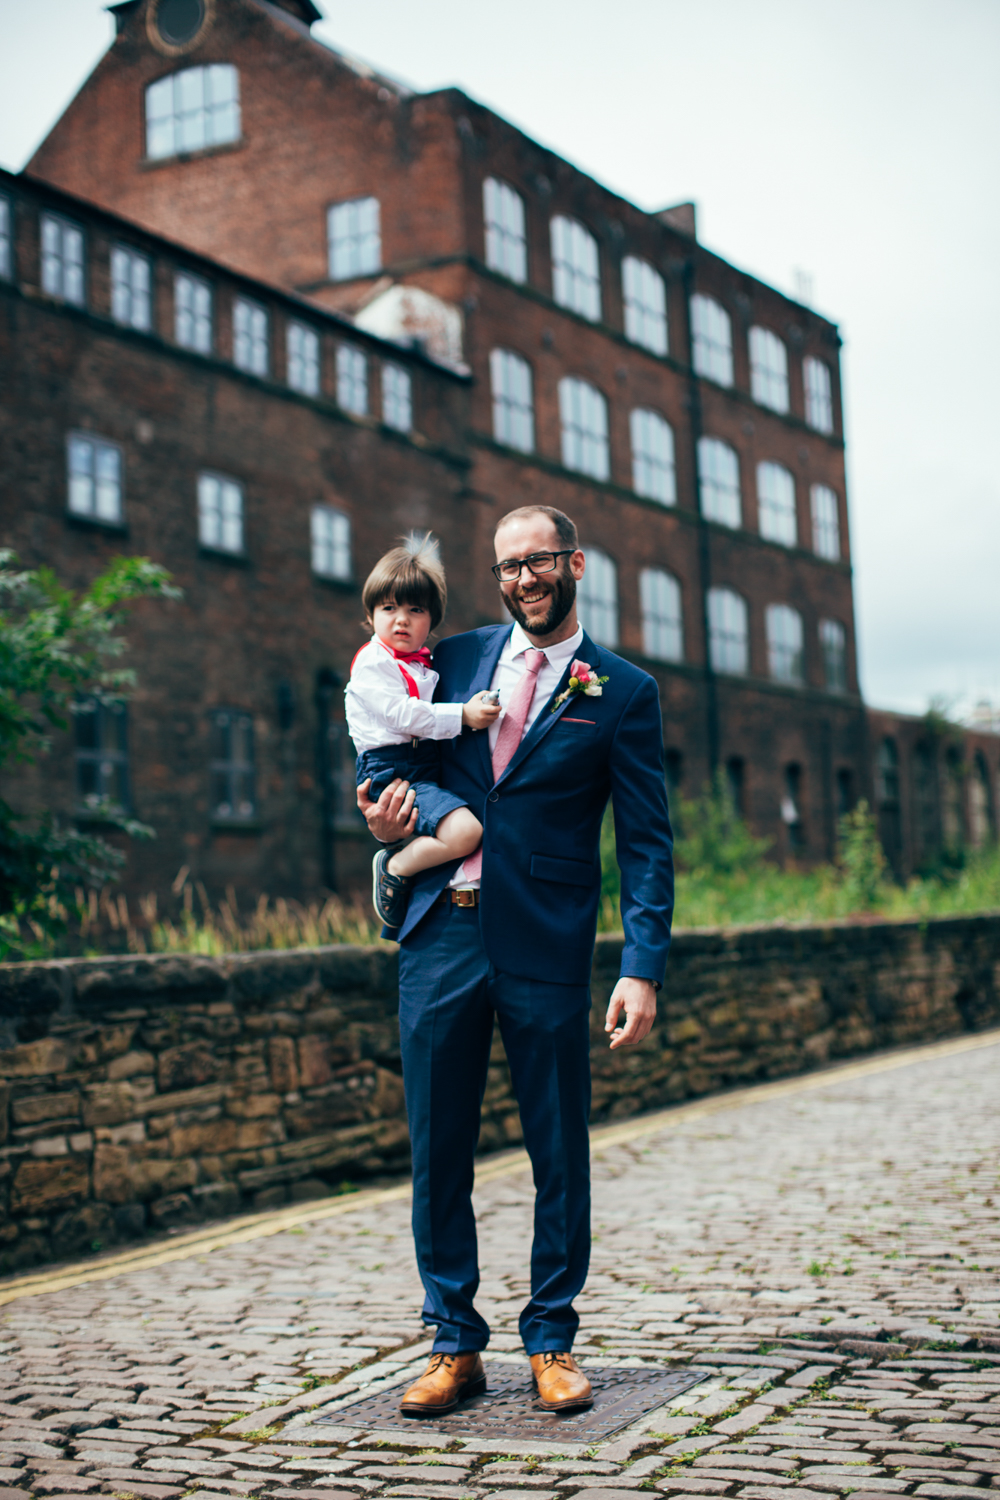 Kelham Island Sheffield Wedding Photographer-5.jpg